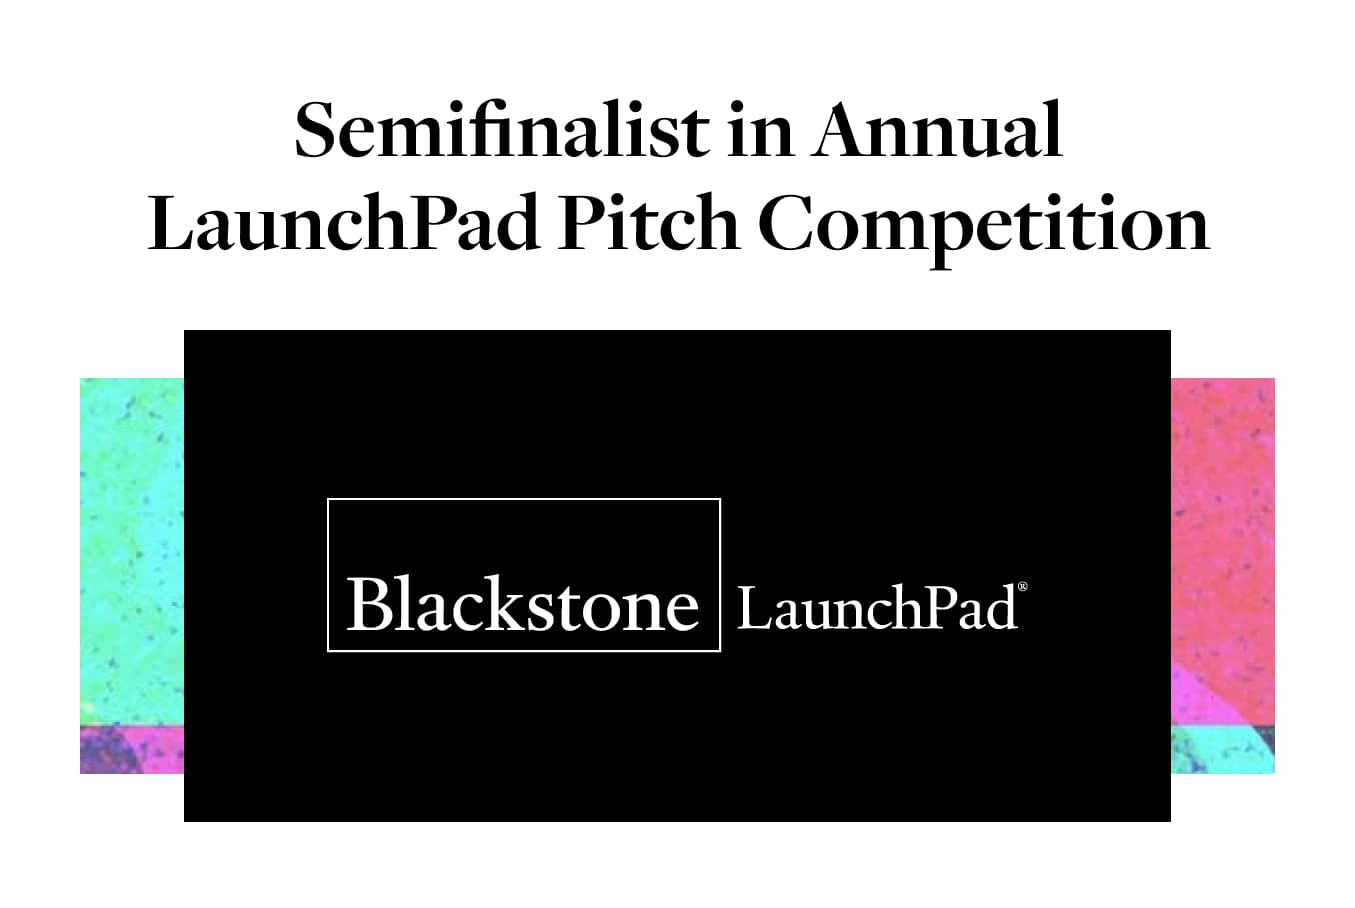 """blackstone launchpad logo titled """"Semifinalist in Annual LaunchPad Pitch Competition"""""""